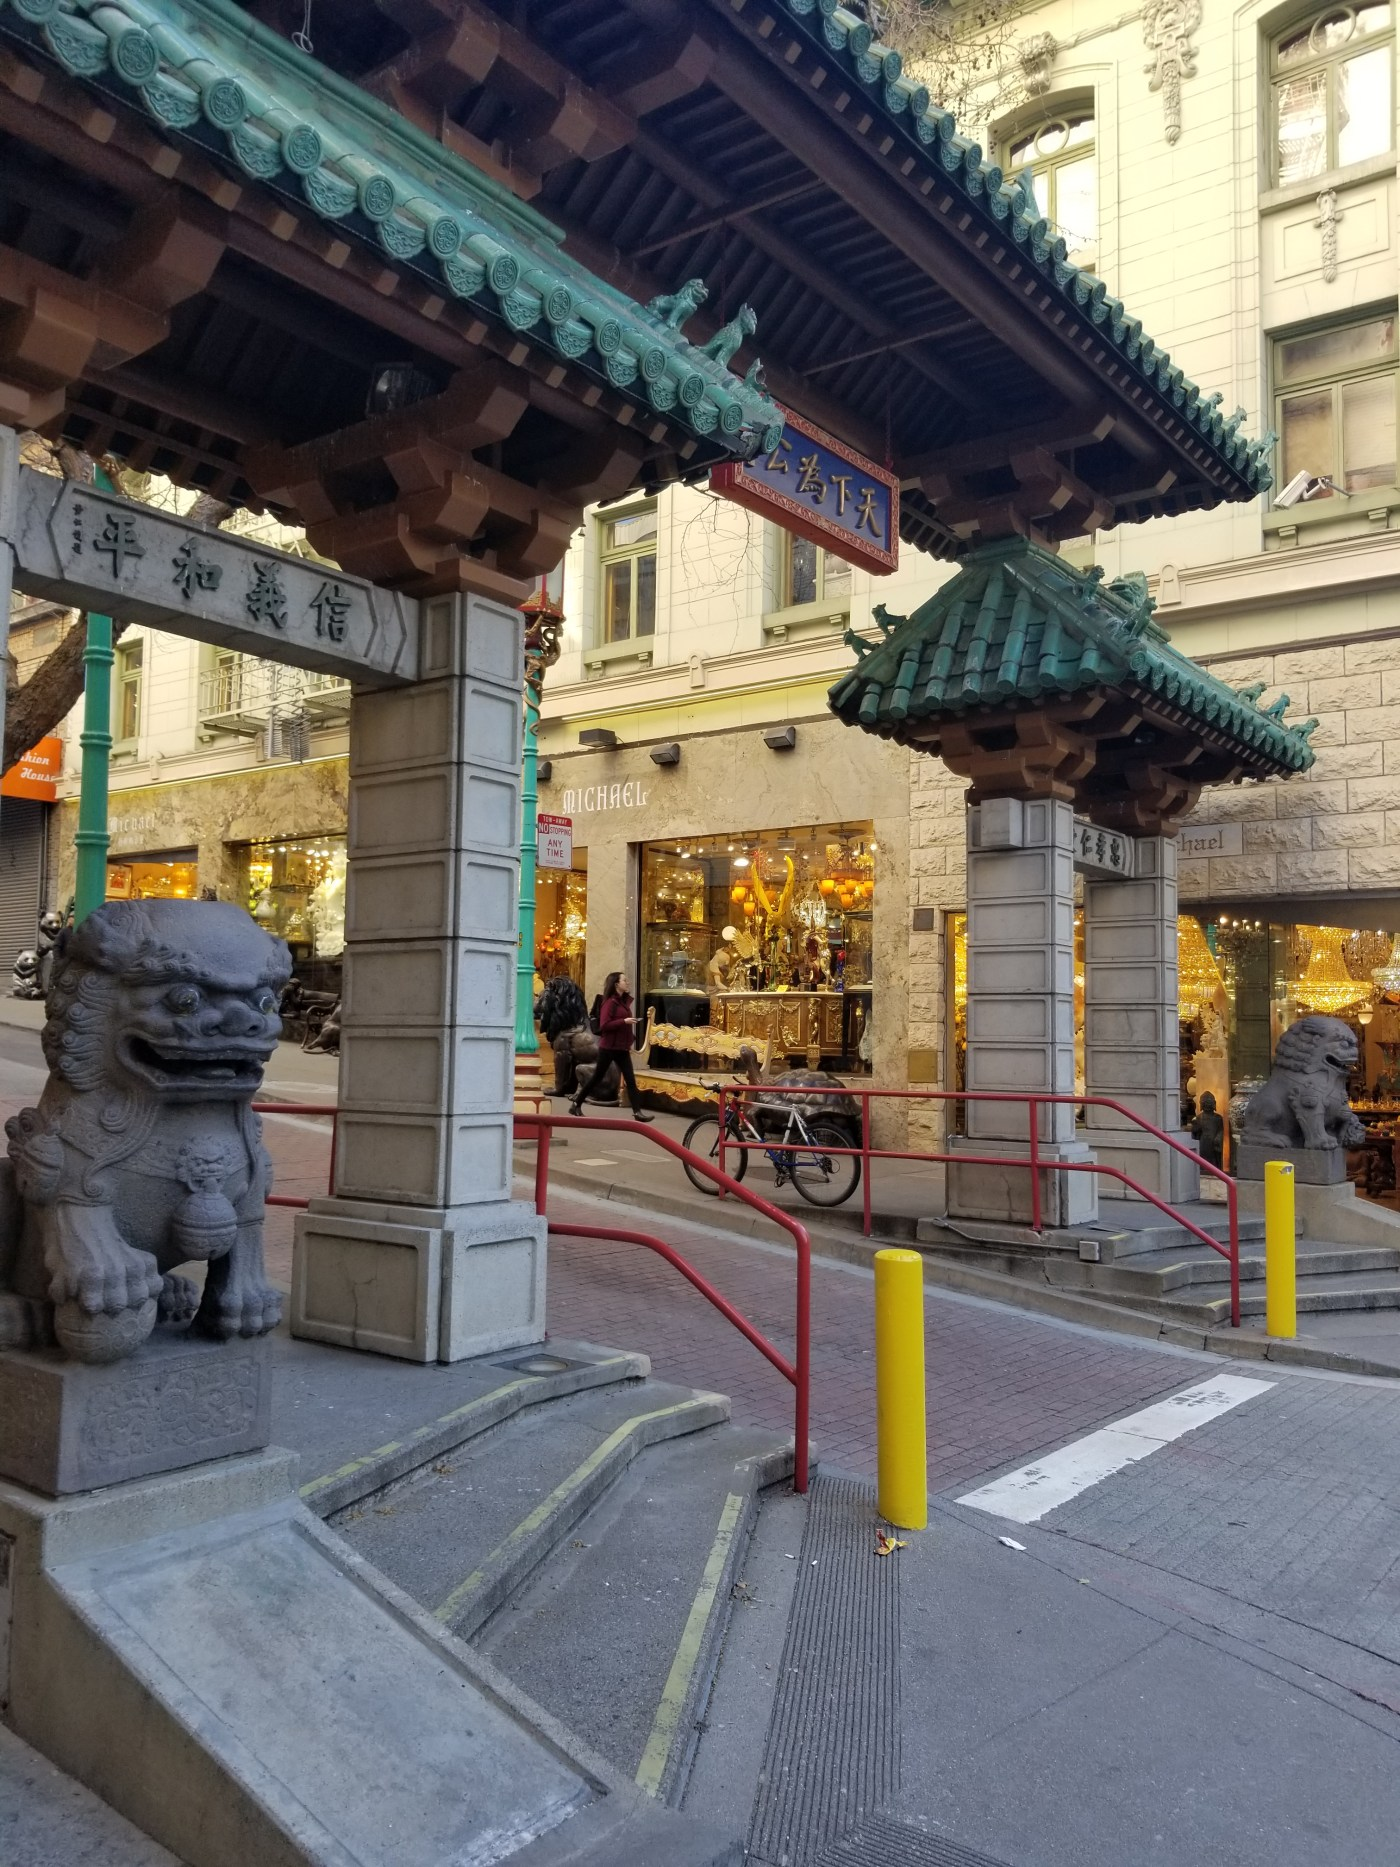 Side view of the Dragon Gate entry into Chinatown, San Francisco, California.